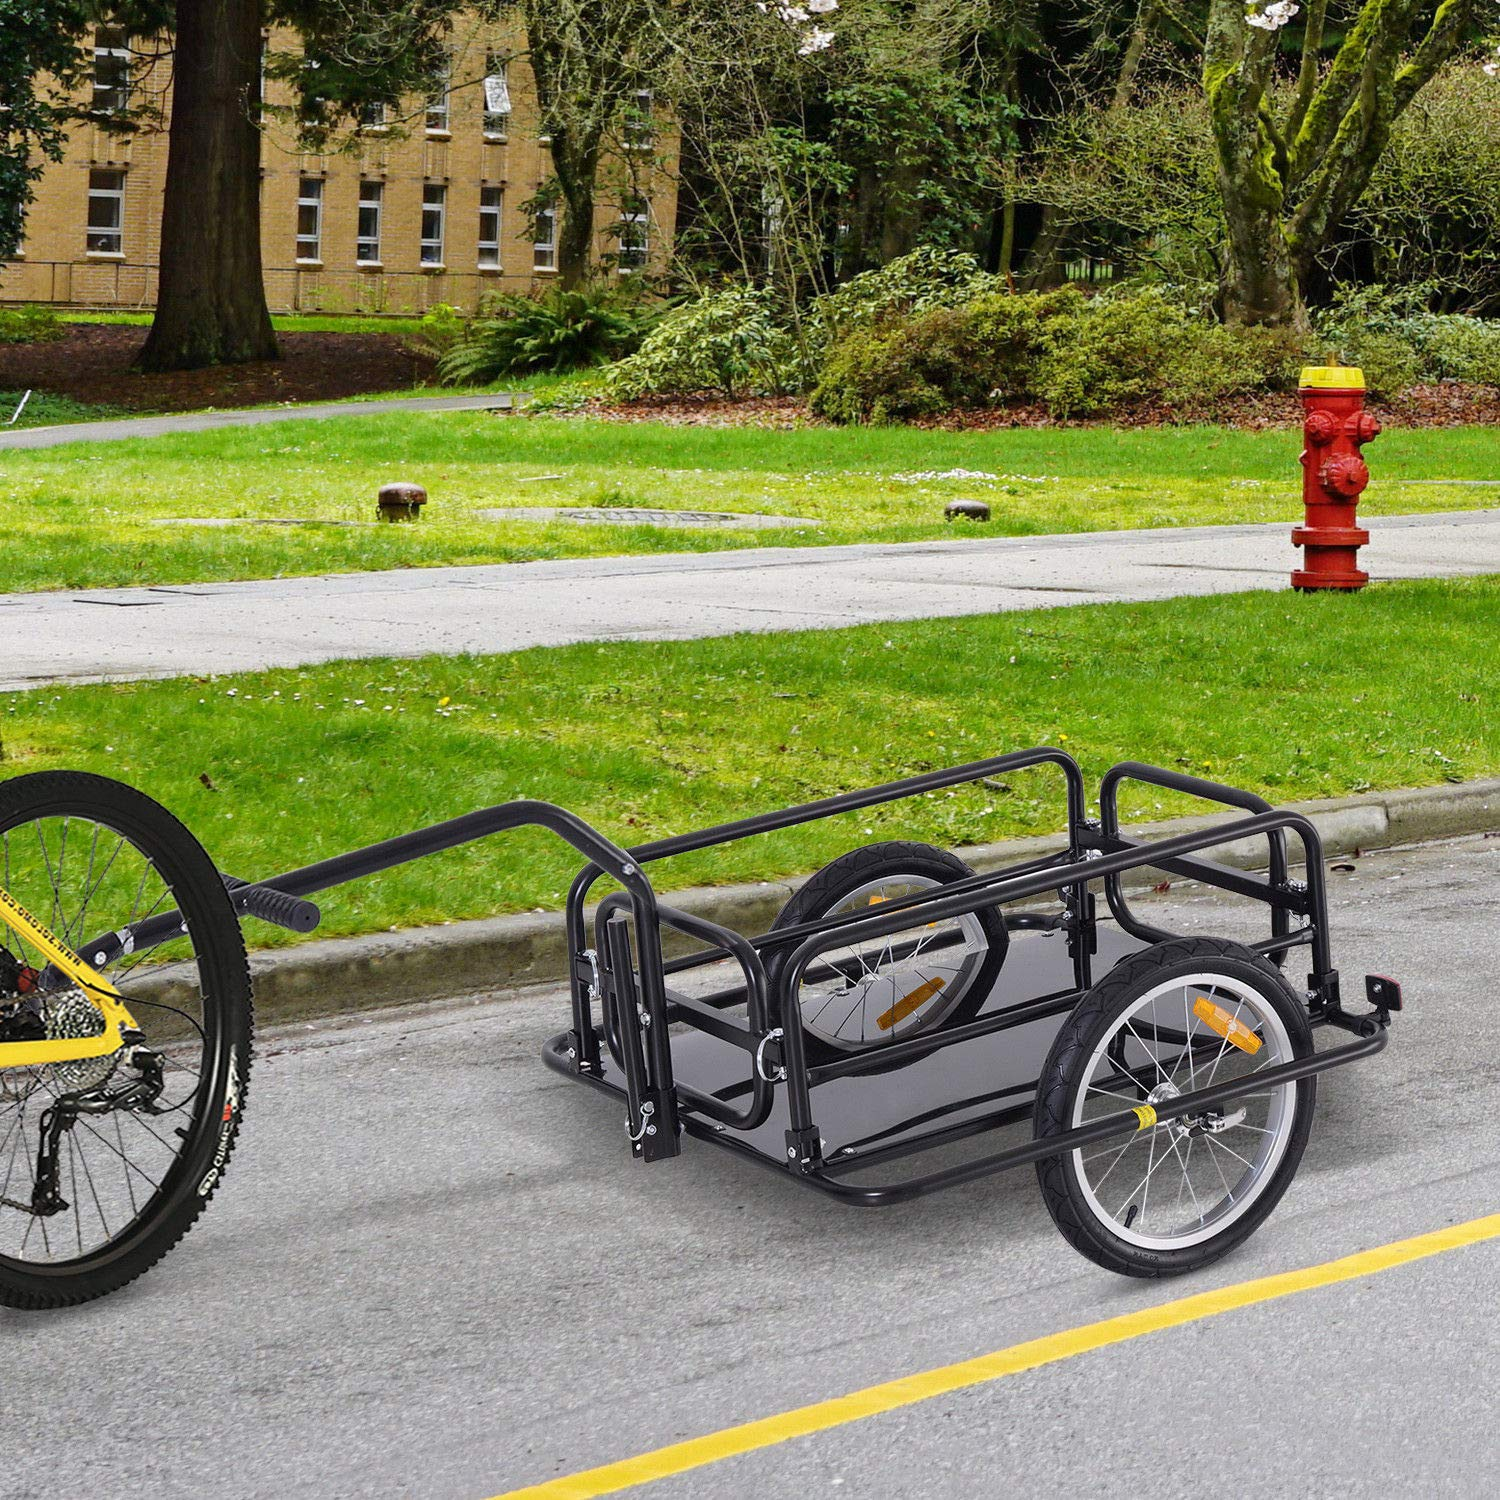 Bike Cargo Storage Cart and Luggage Trailer with Hitch Folding Bicycle Black by Caraya (Image #3)